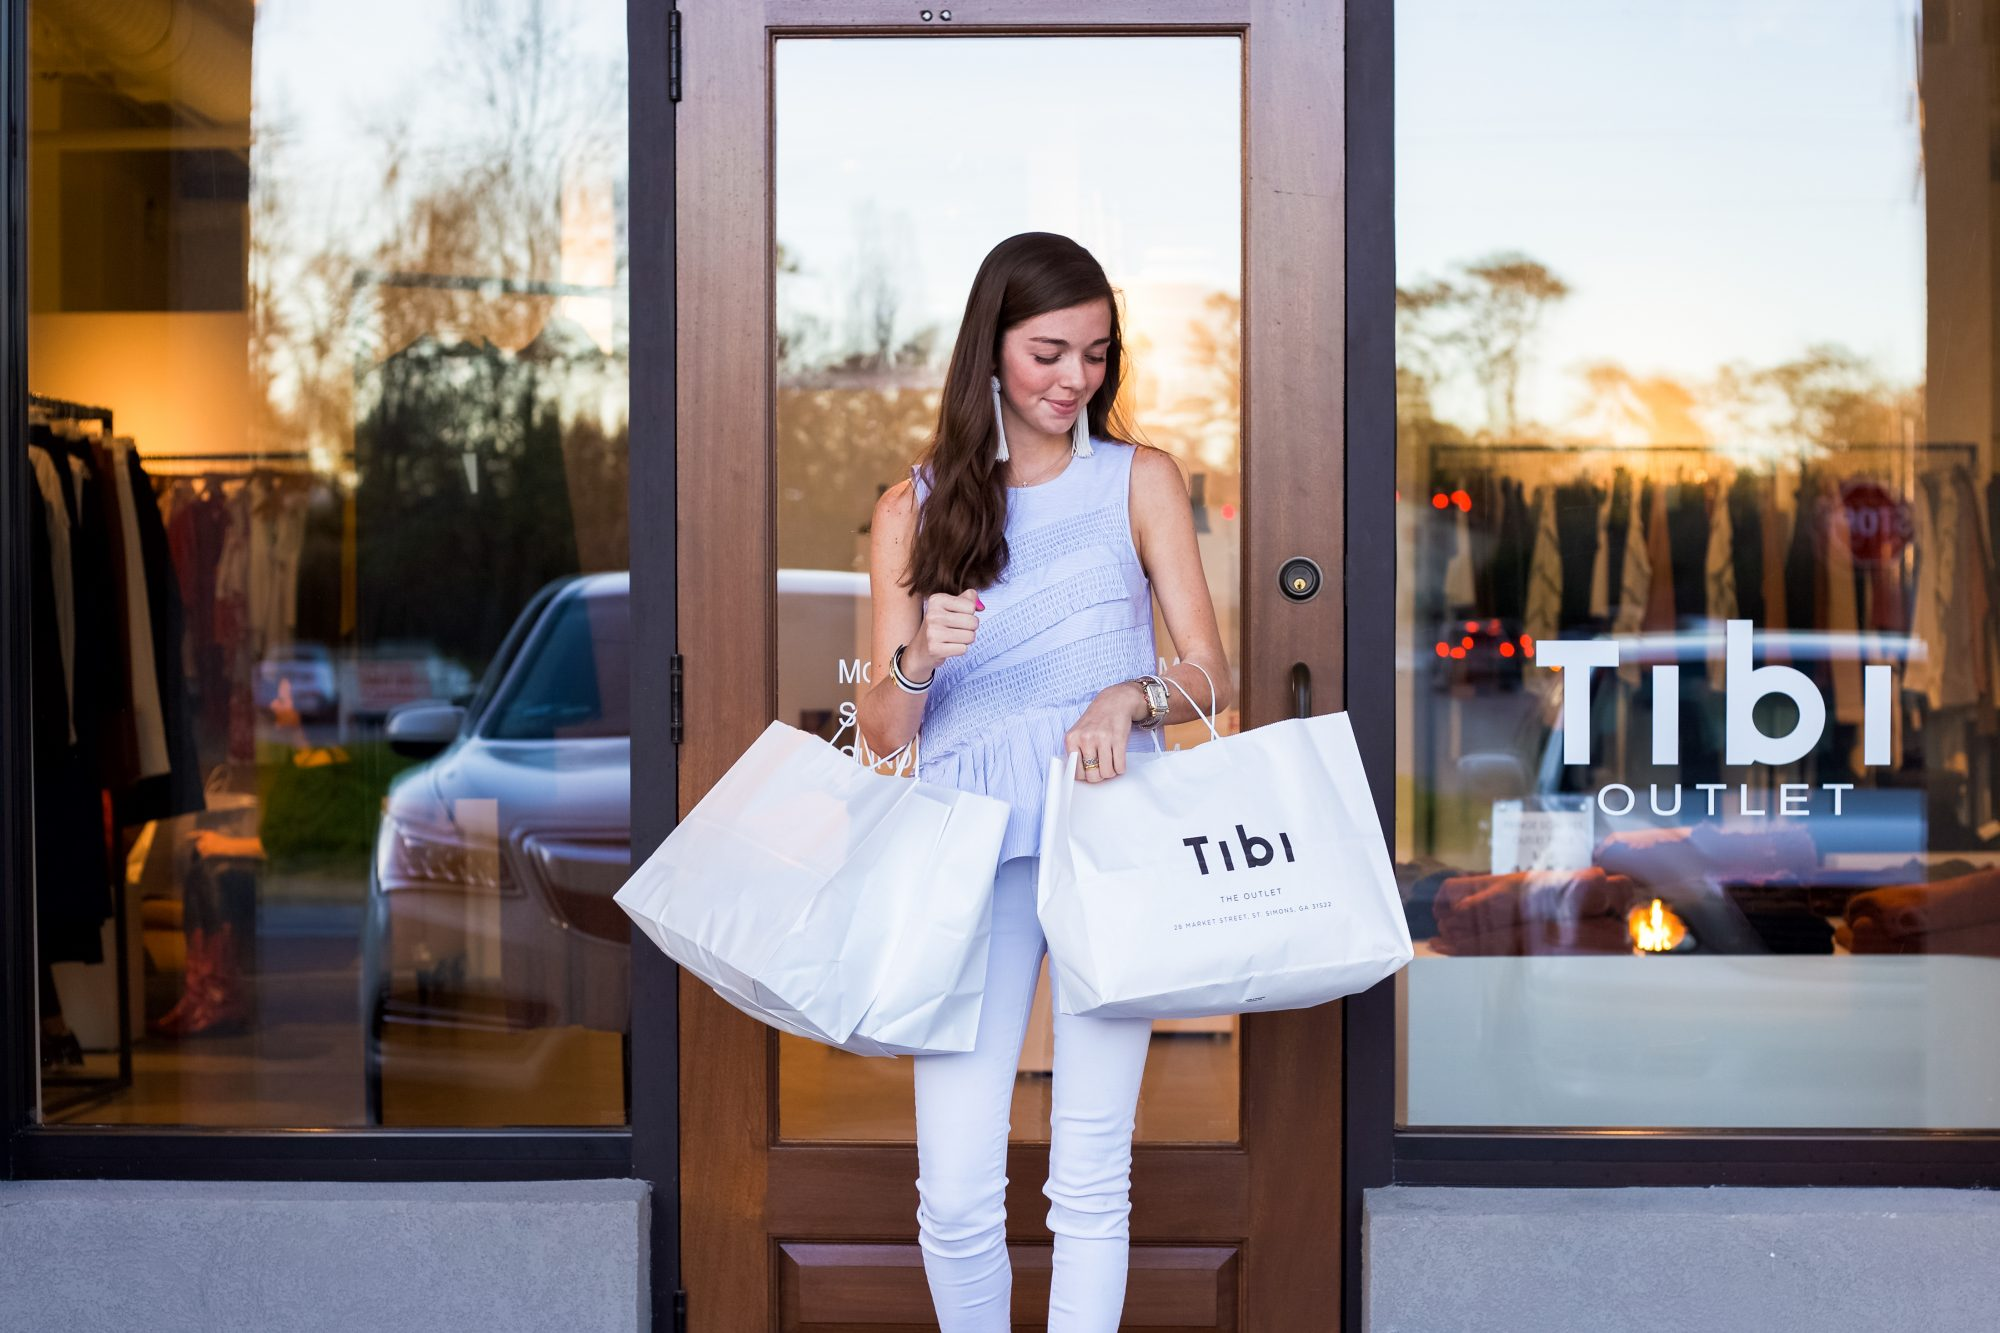 Tibi Outlet